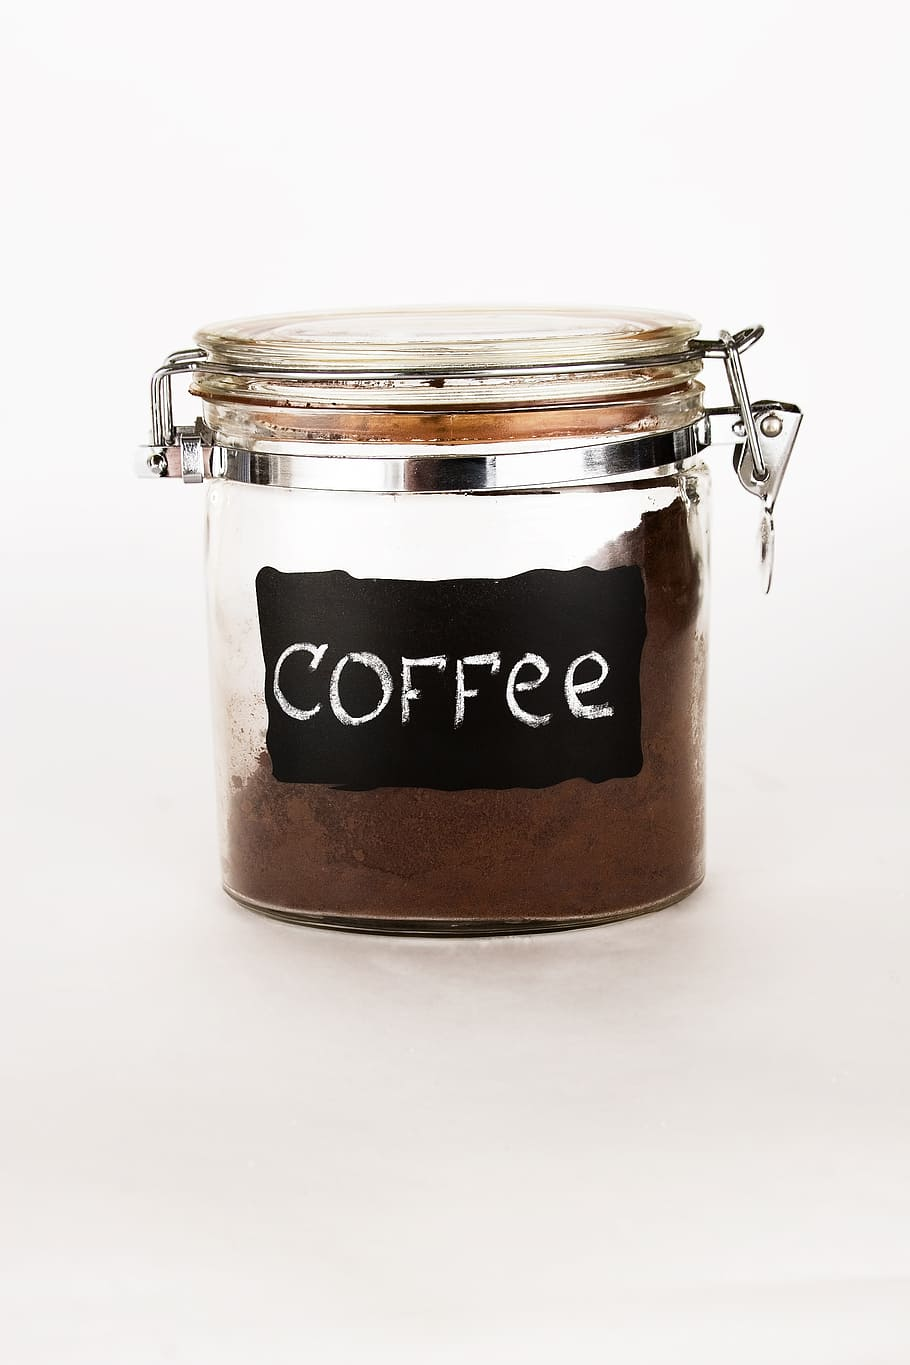 Where to Shop and What to Buy? Coffee Powder